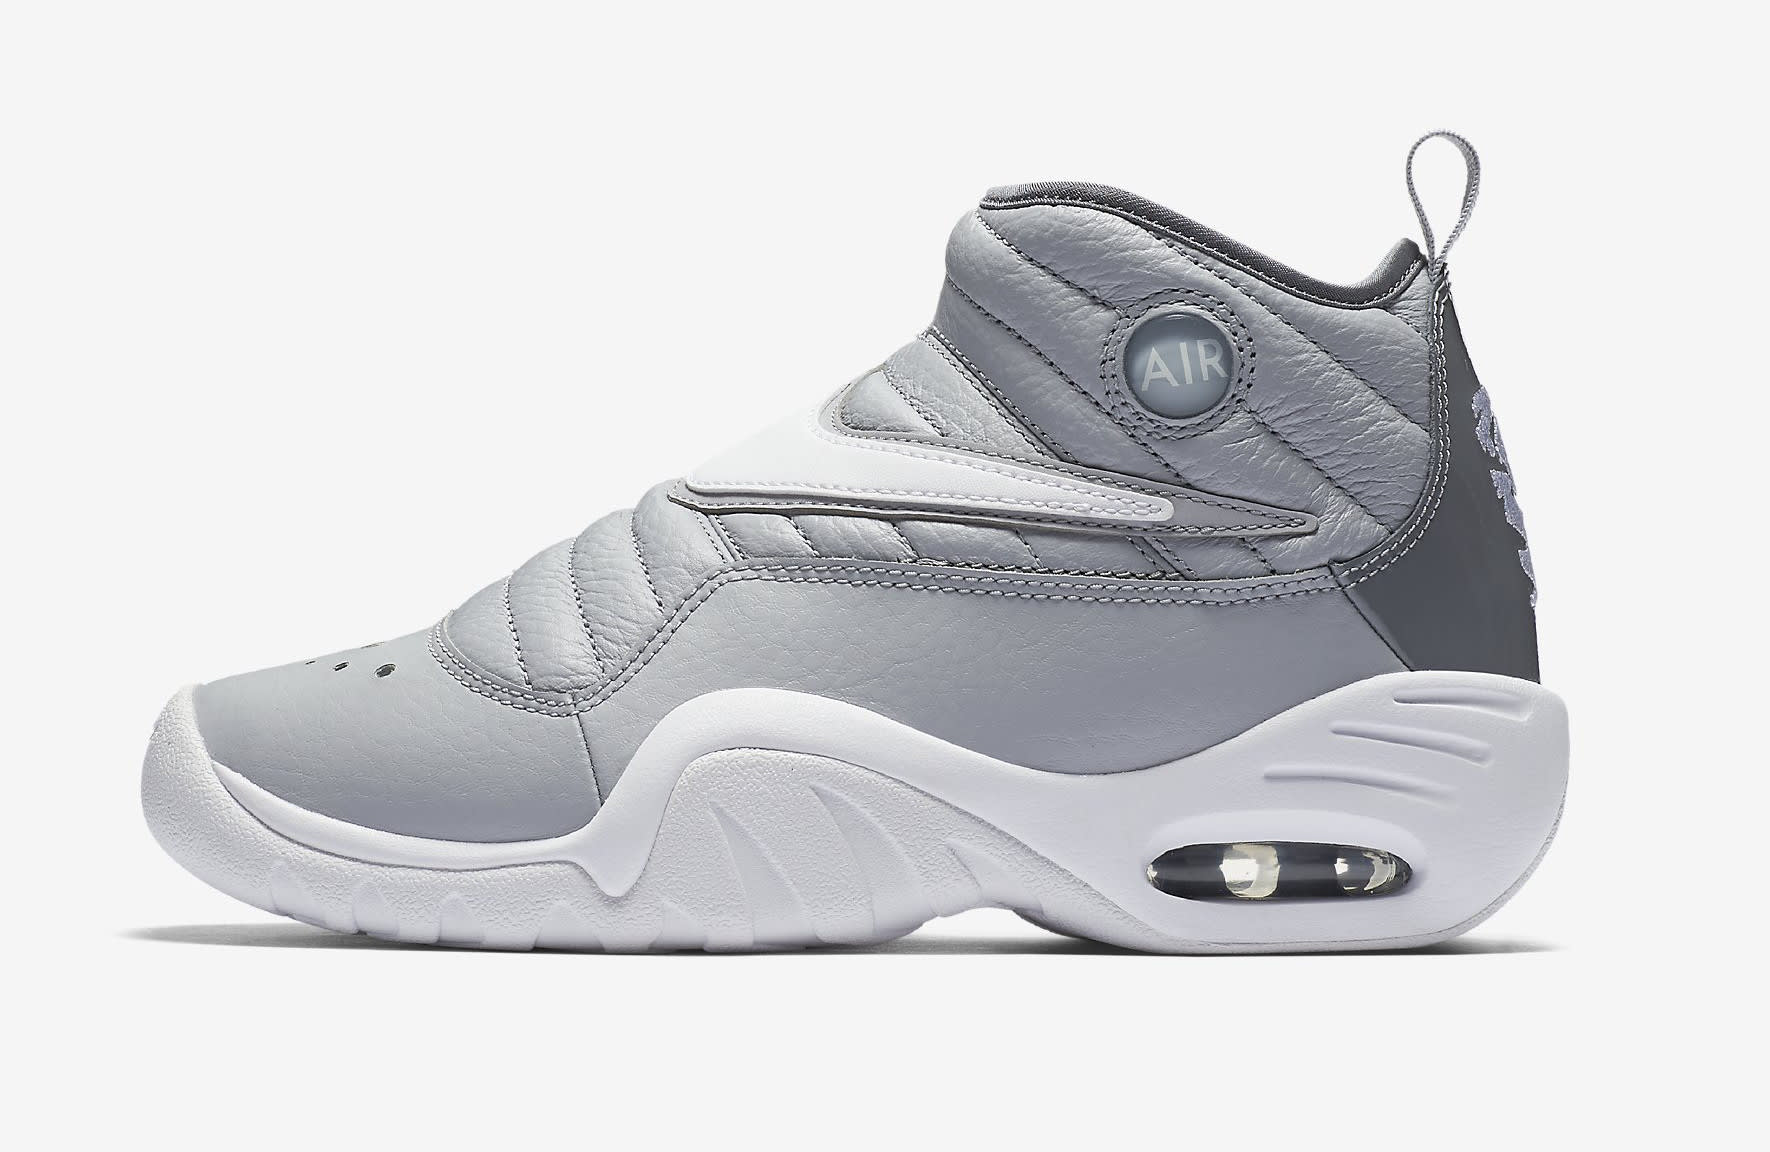 Nike Air Shake Ndestrukt 'Cool Grey' AA2888-002 (Lateral)